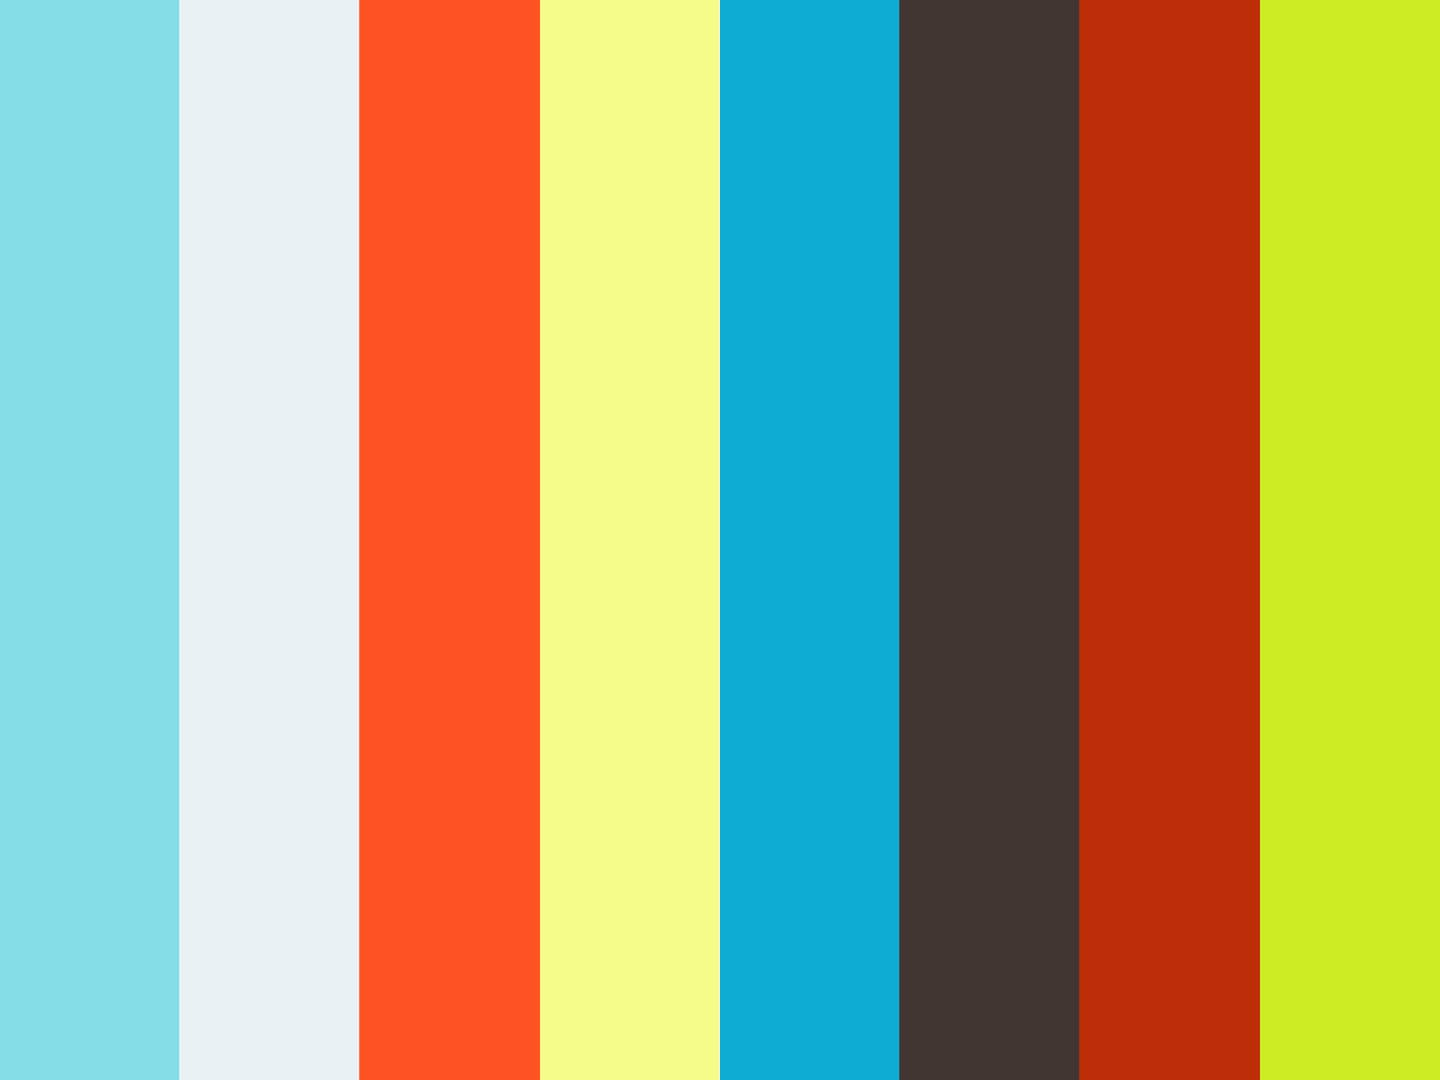 video institucional jard n infantil stanford on vimeo